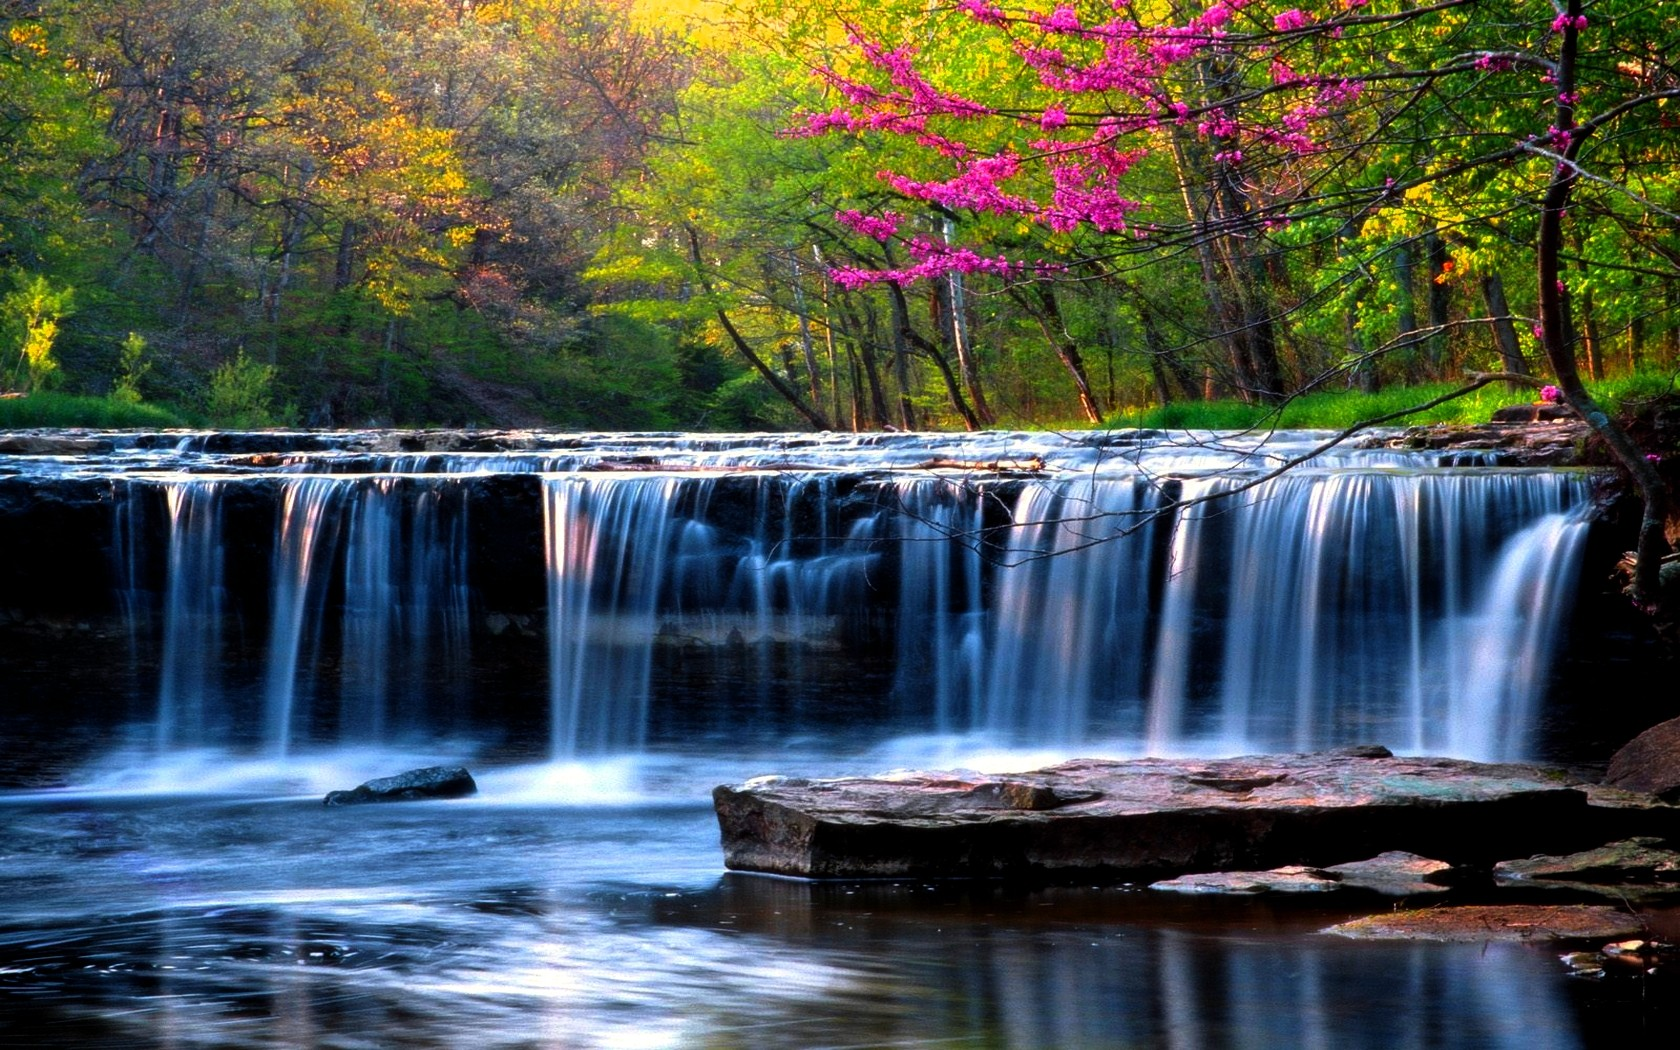 waterfalls nature spring falls forest wallpaper background